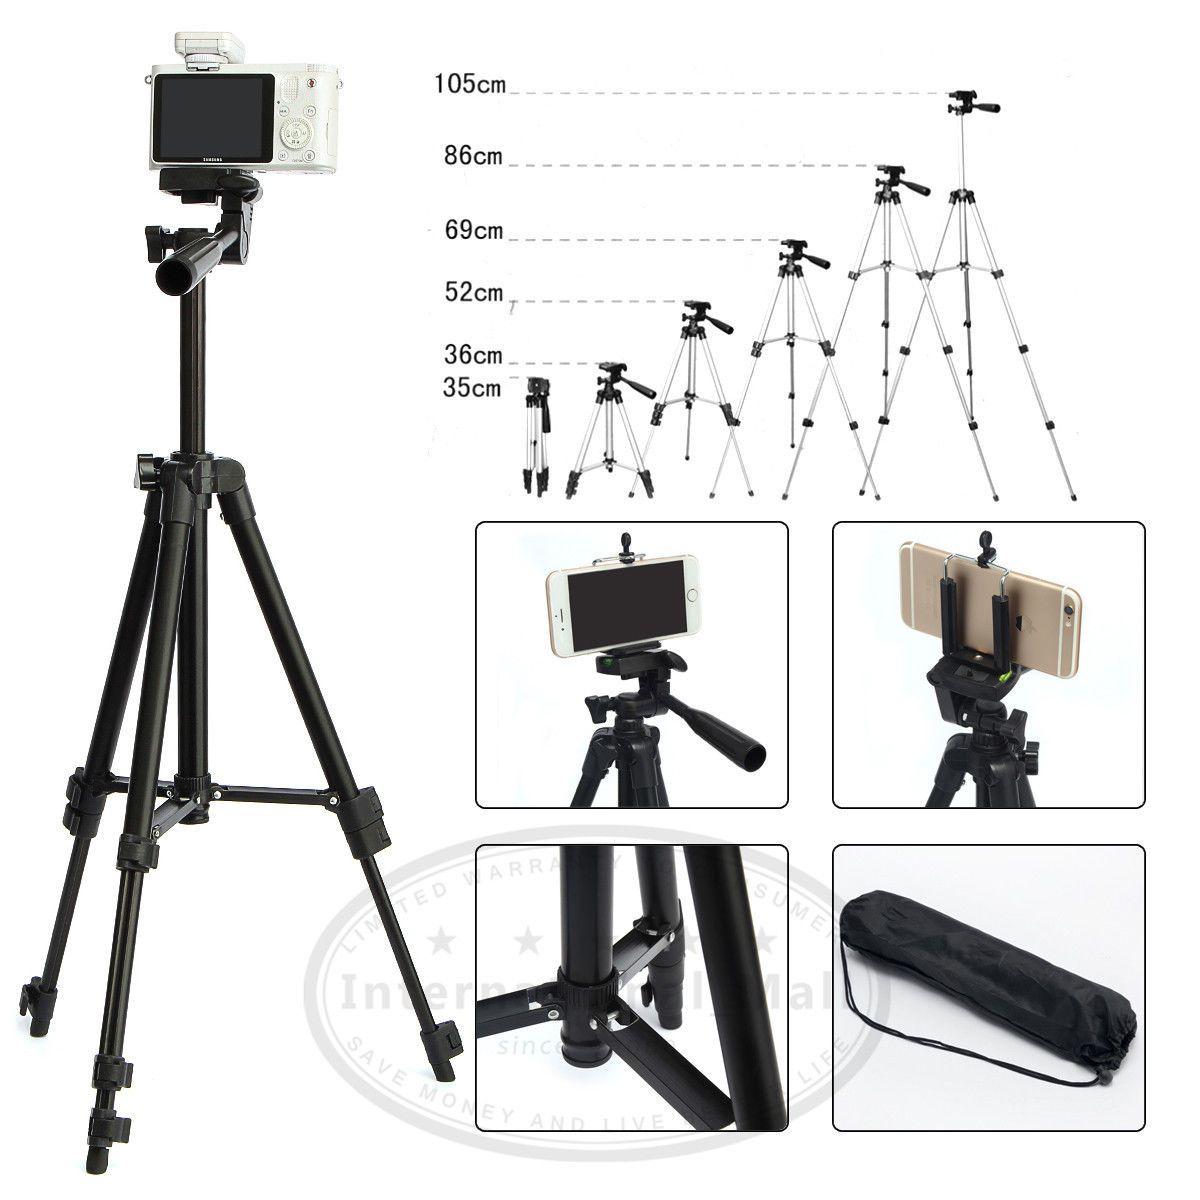 competitive price 6a4f7 47ad1 Professional Telescopic Tripod Stand Holder for iPhone 6 Plus ...